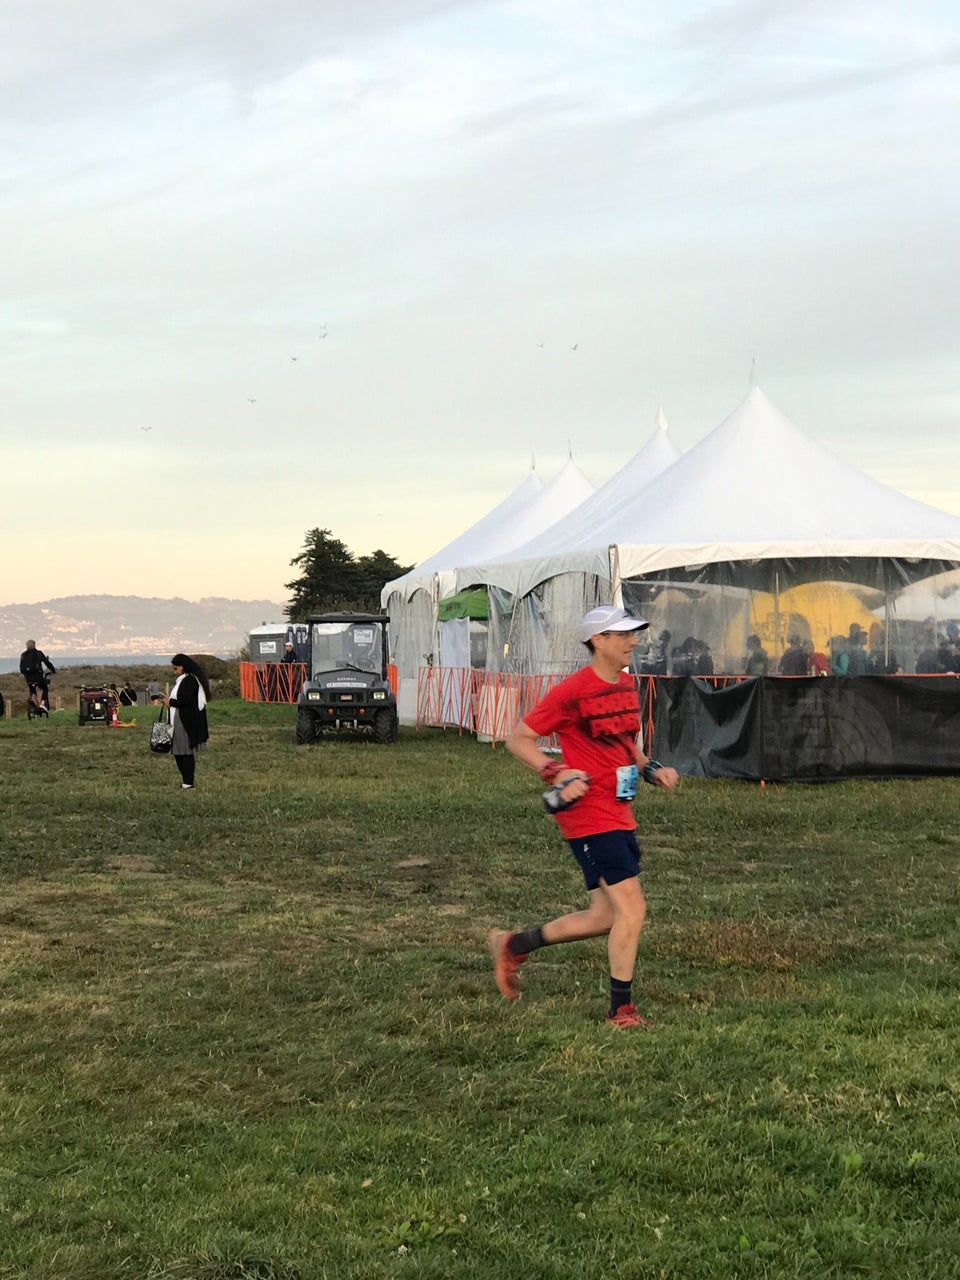 Tantek running the last few meters on uneven Crissy field towards the North Face Endurance Challenge finish line, finishing area tents in the background.